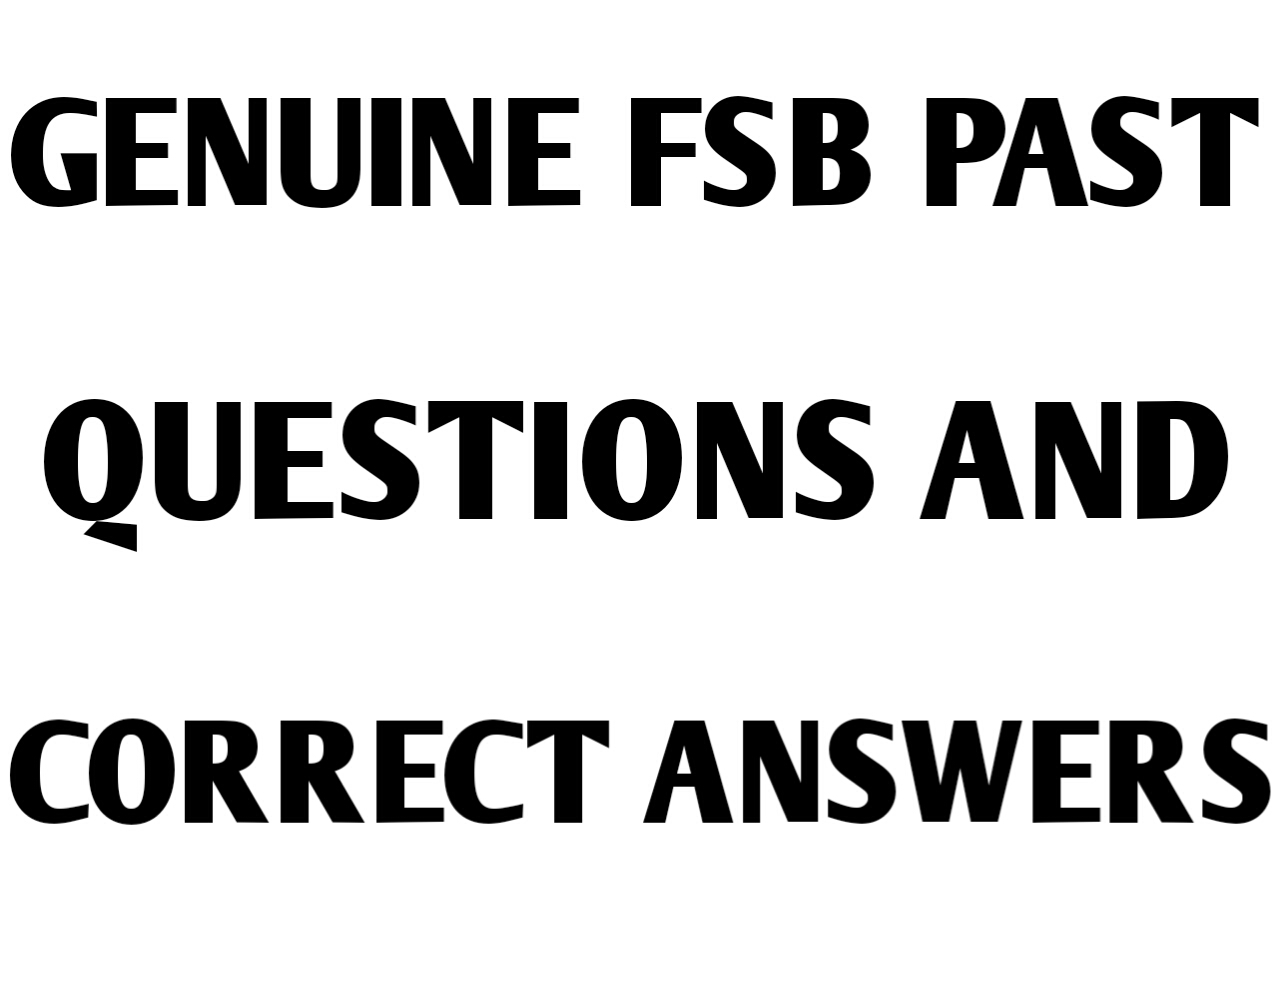 Genuine FSB interview past questions and correct answers